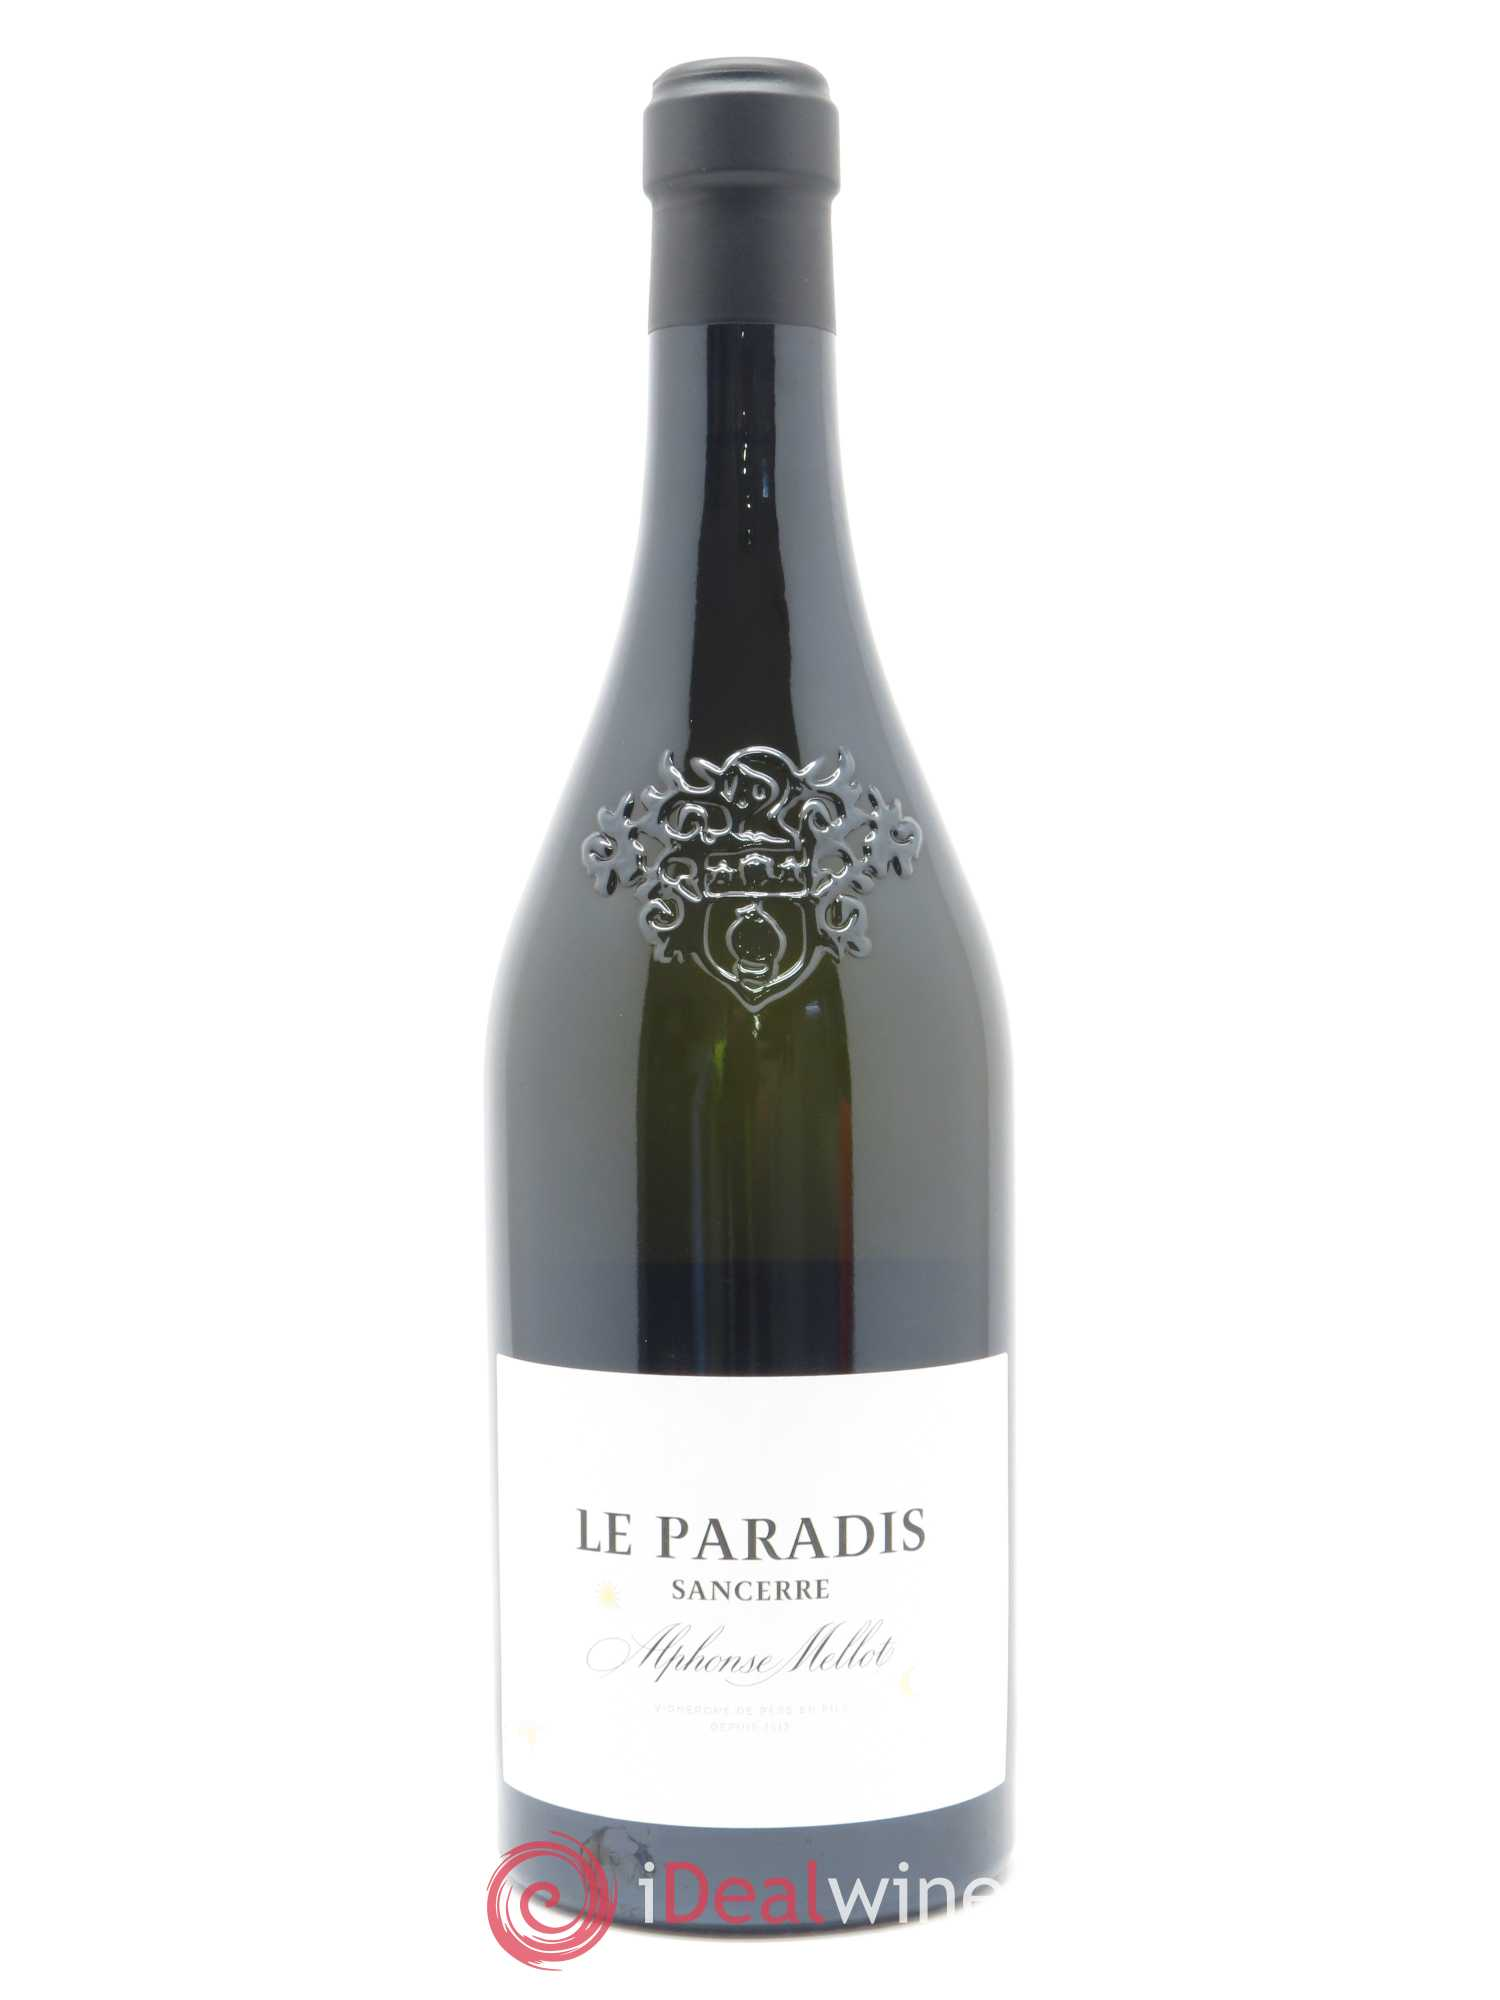 Sancerre Le Paradis Alphonse Mellot  2016 - Lot of 1 Bottle